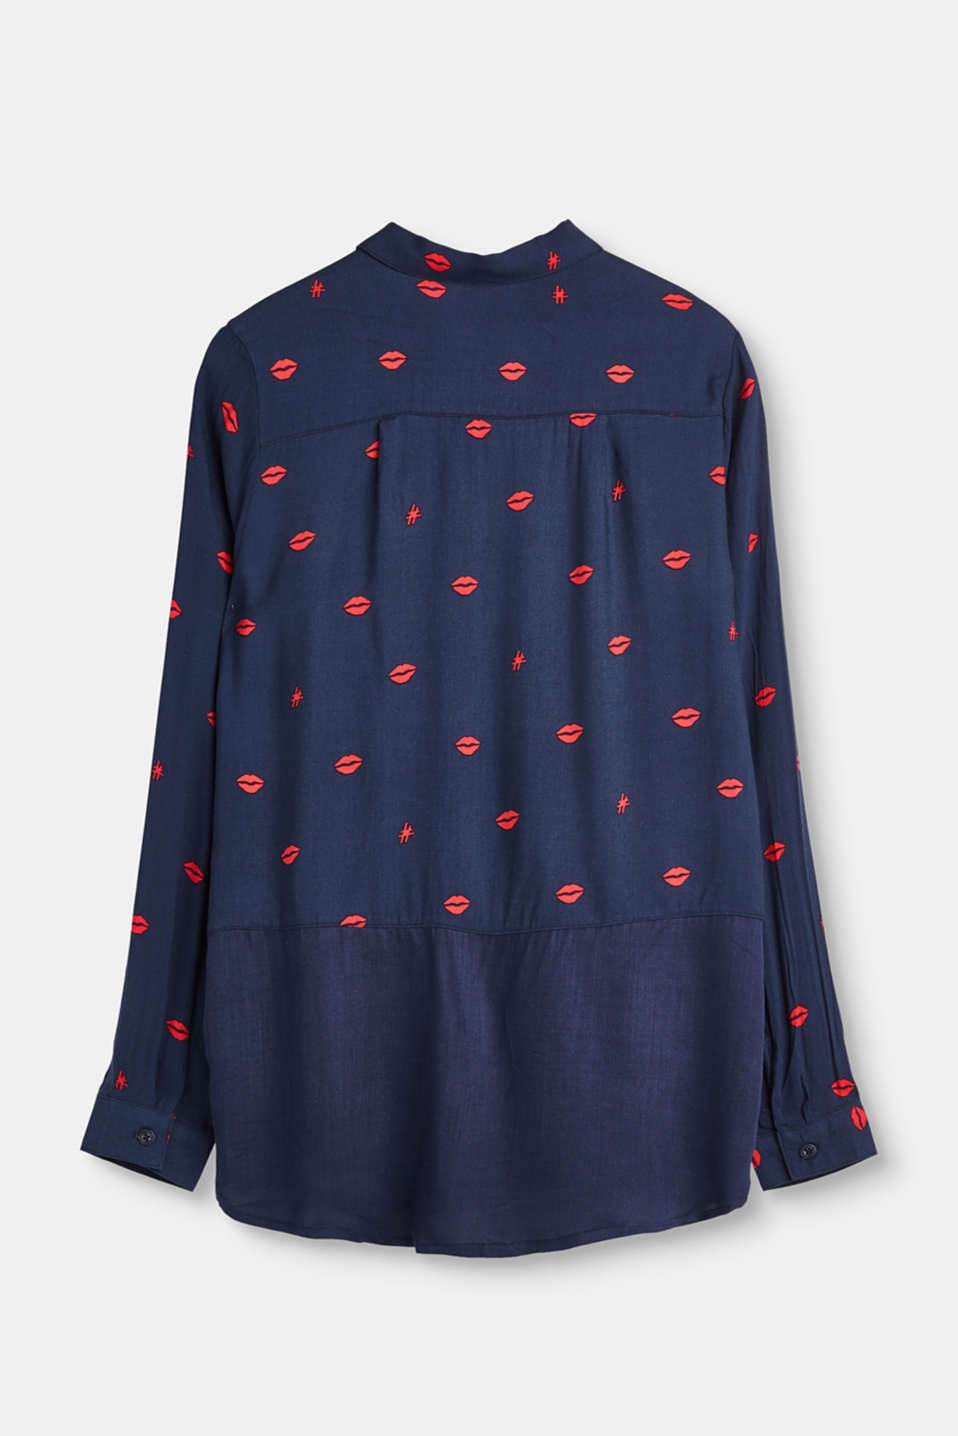 Lightweight blouse with a lip print